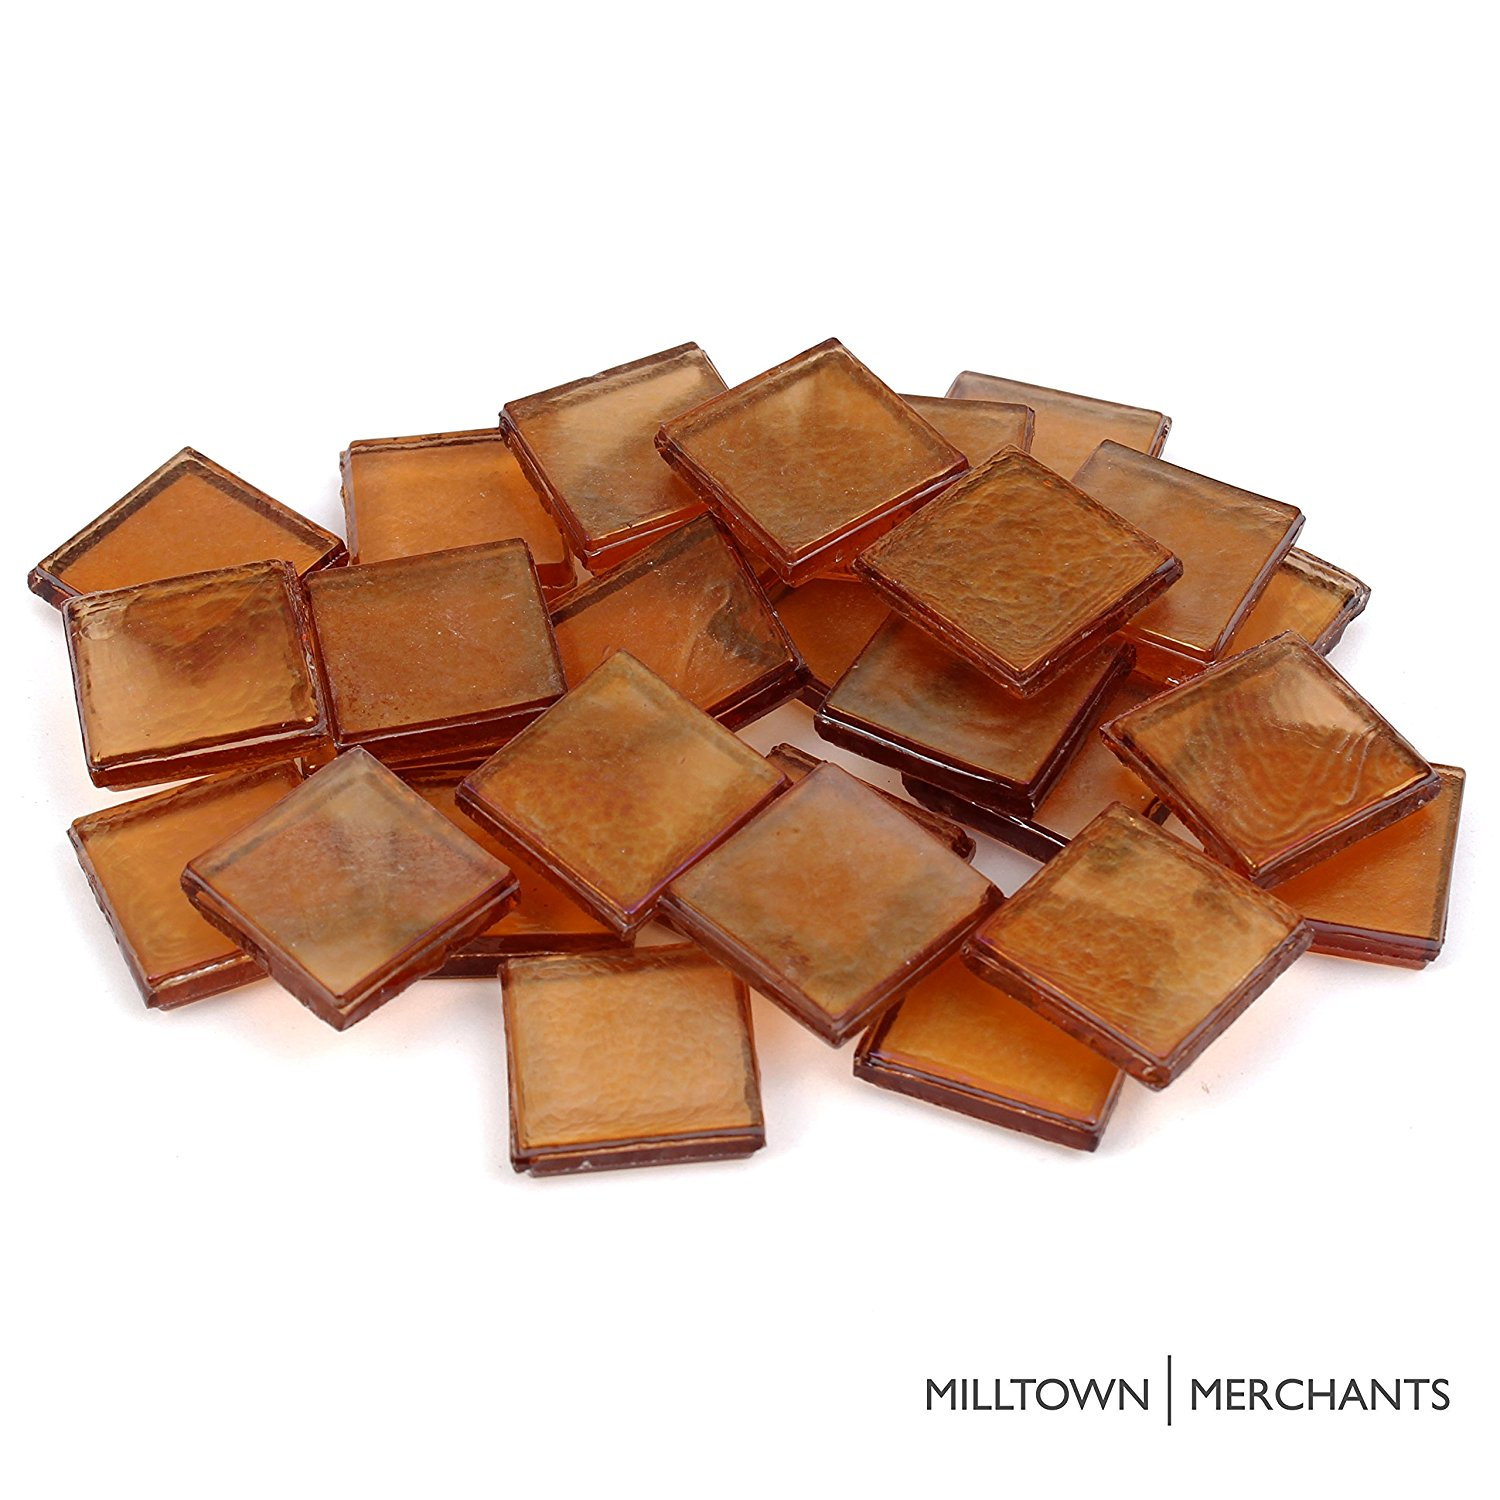 "Milltown Merchants 7/8"" (22mm) Iridescent Premium Glass Mosaic Tiles - Bulk Assortment of Mosaic Tiles"